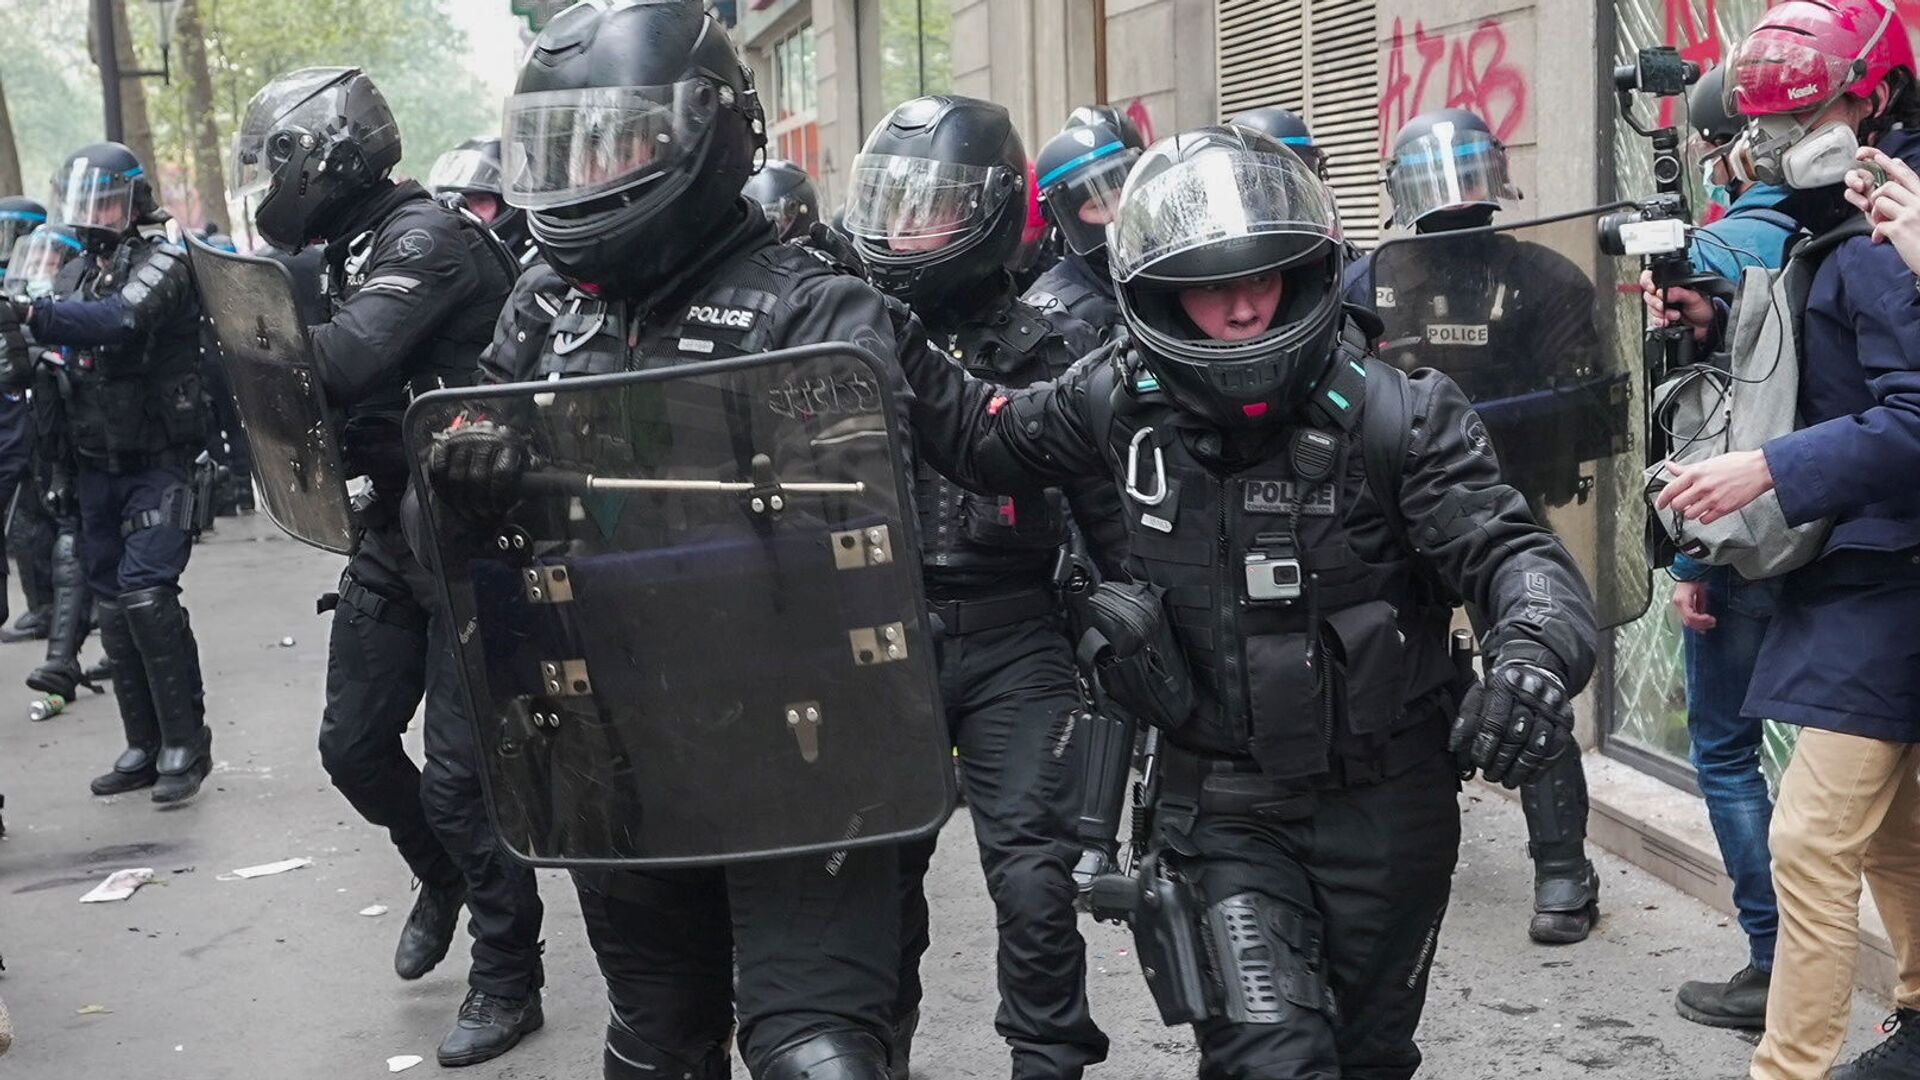 French riot police walk in formation during clashes with protesters as part of the traditional May Day protests, amid the coronavirus disease (COVID-19) outbreak in Paris, France, 1 May 2021. - Sputnik International, 1920, 21.08.2021